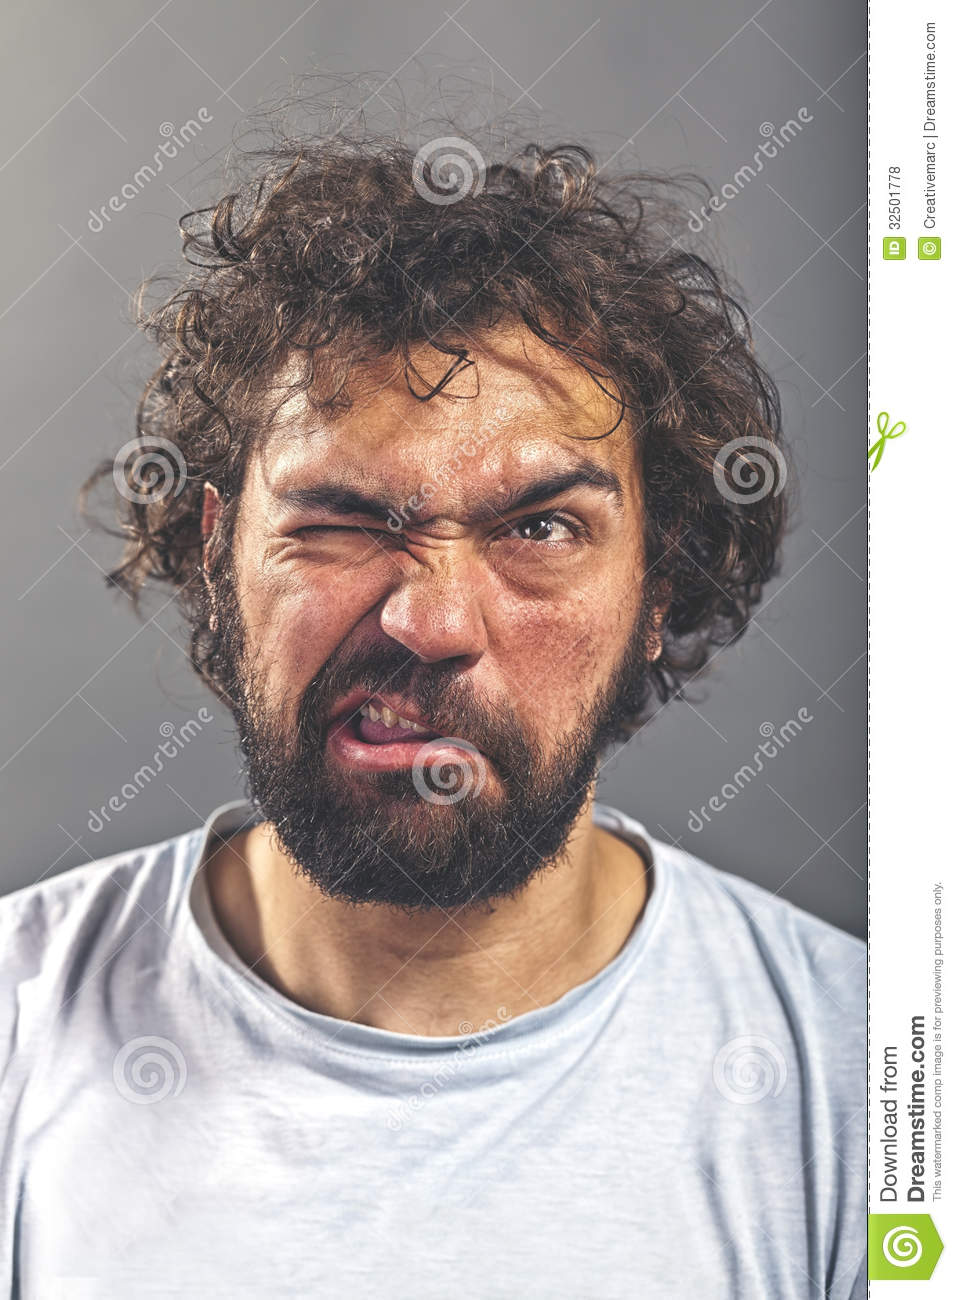 Conception innovante cc378 dc183 Weird and crazy guy stock photo. Image of grimace, freaky ...